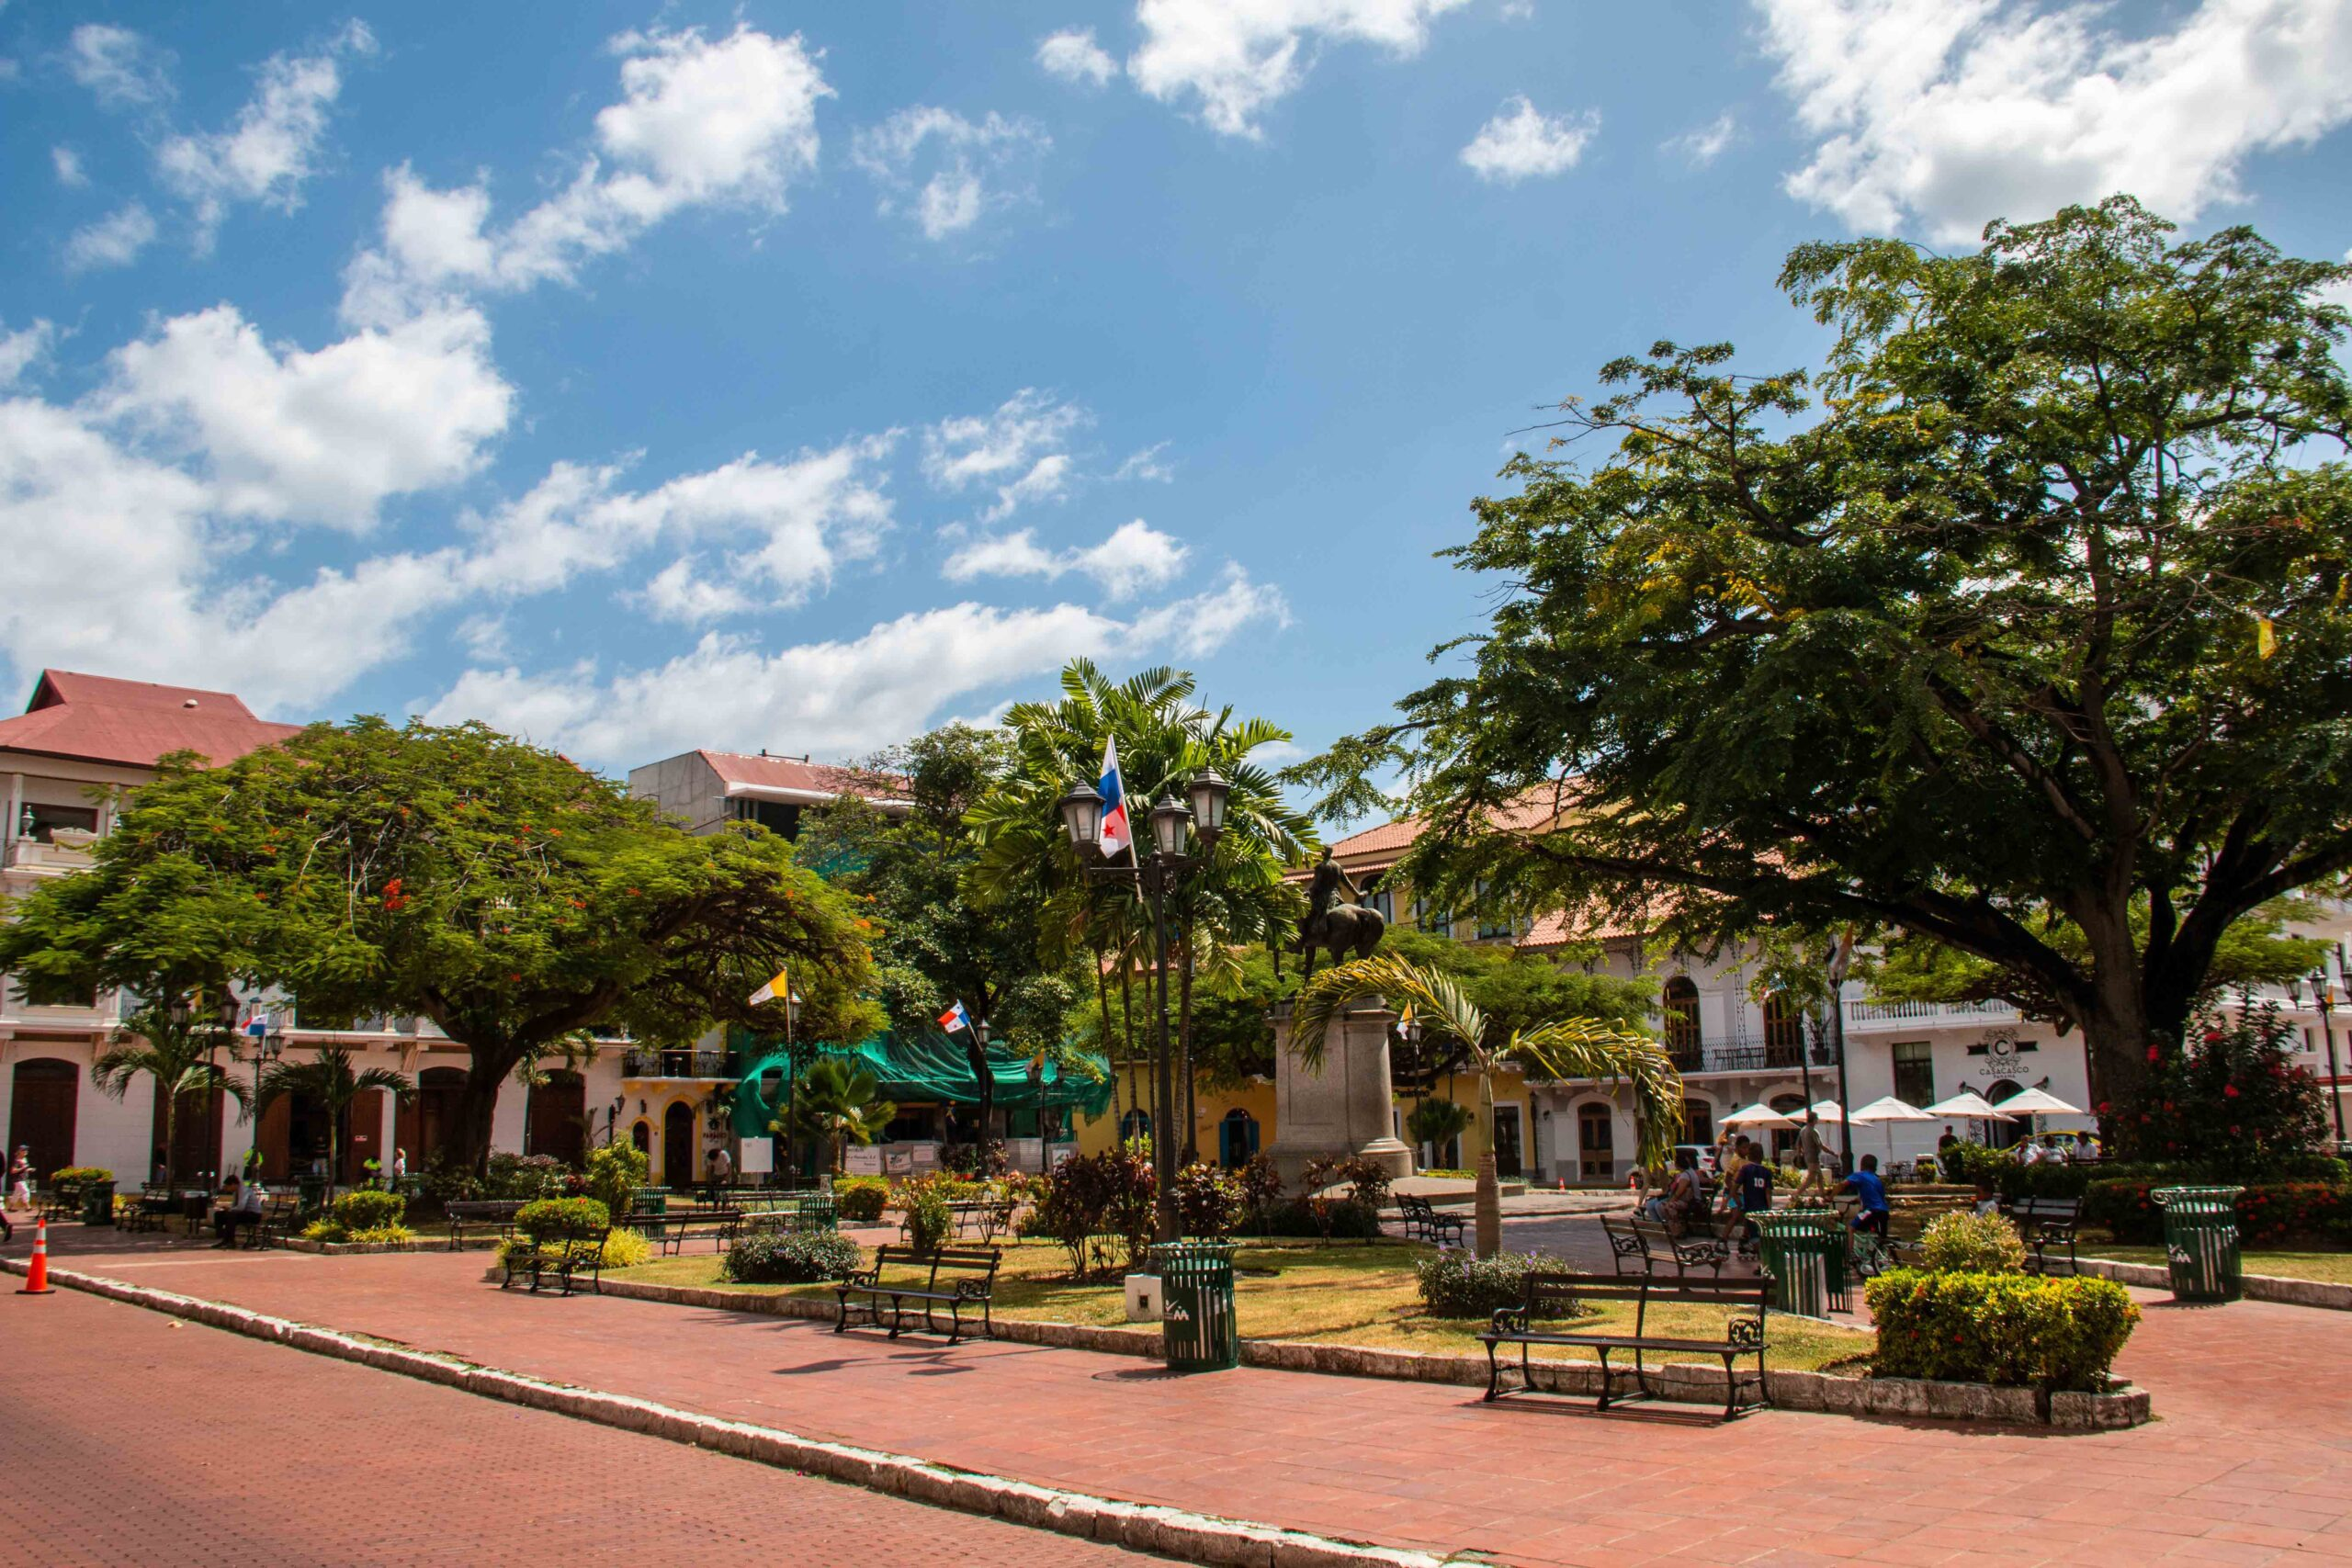 Square in Casco Viejo Panama City